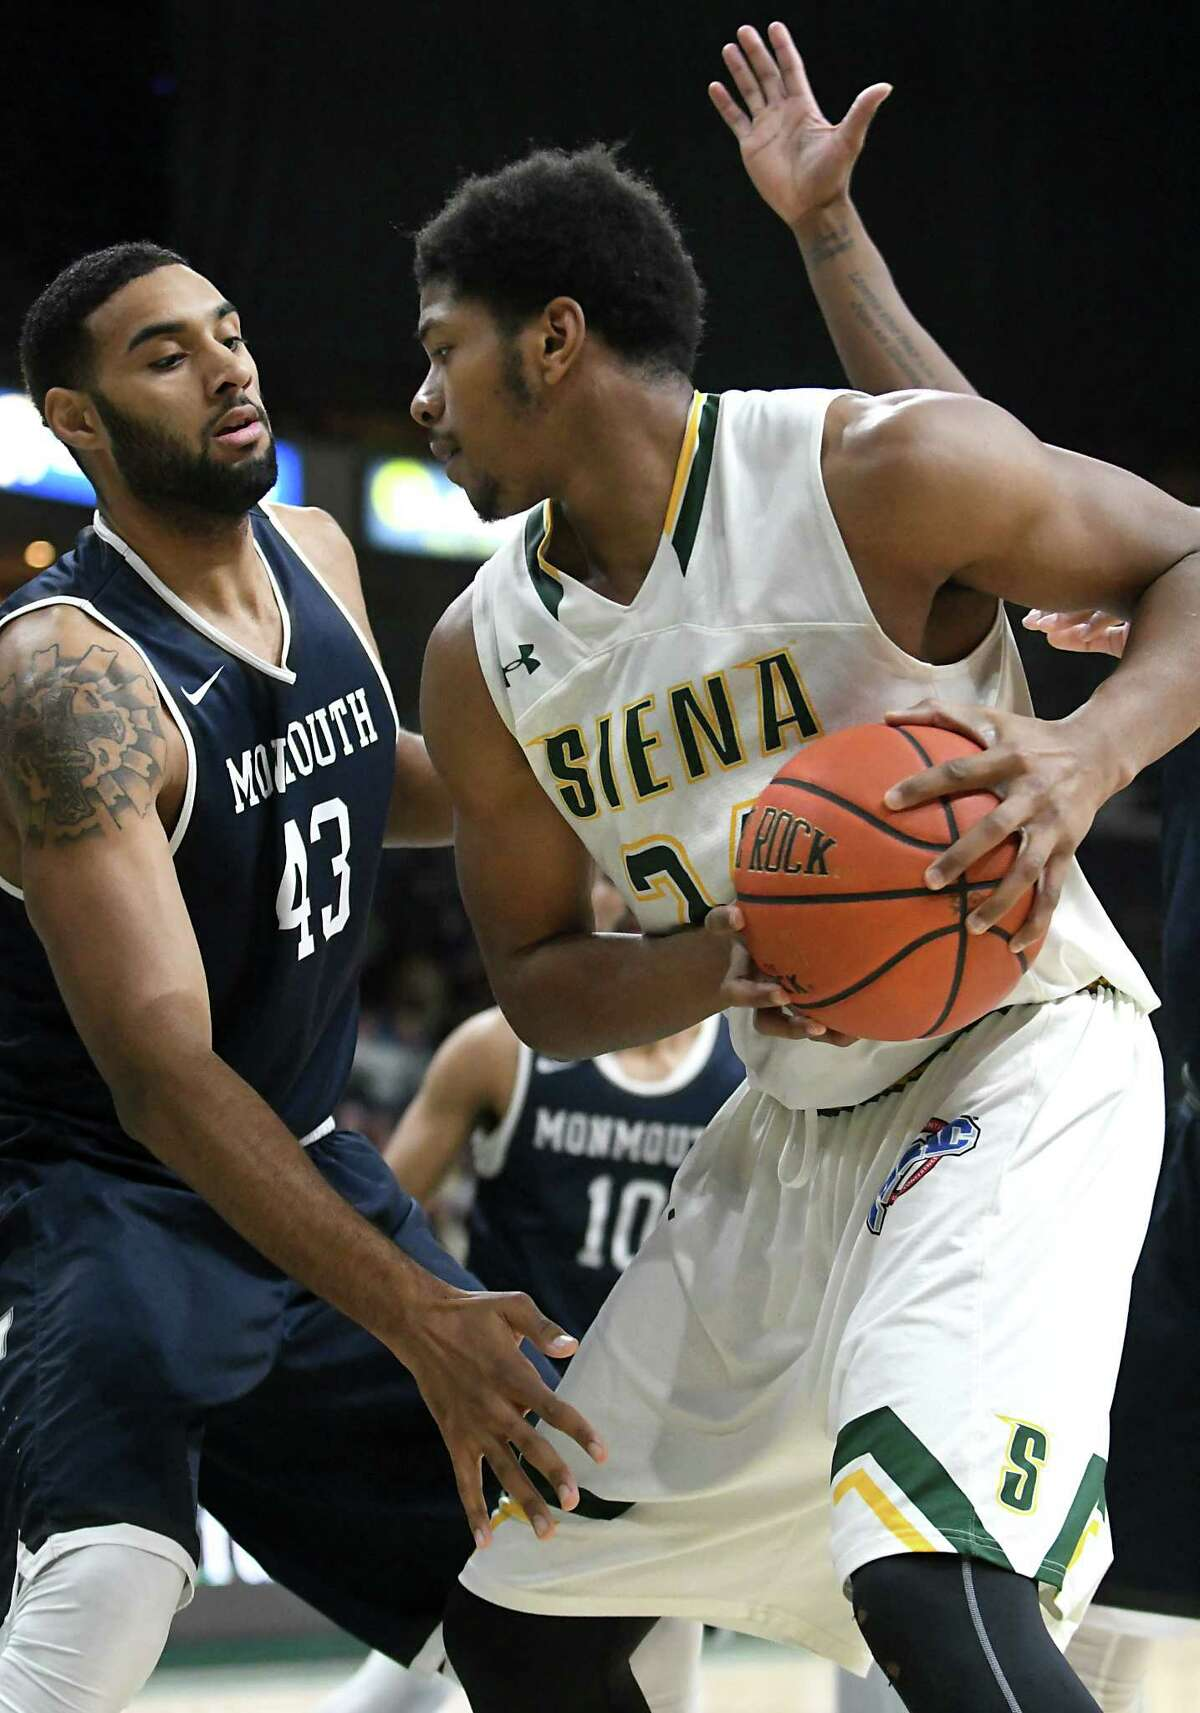 Siena's Lavon Long is defended by Monmouth's Chris Brady as he tries to make a move to the basket during a basketball game at the Times Union Center on Monday, Feb. 13, 2017 in Albany, N.Y. (Lori Van Buren / Times Union)